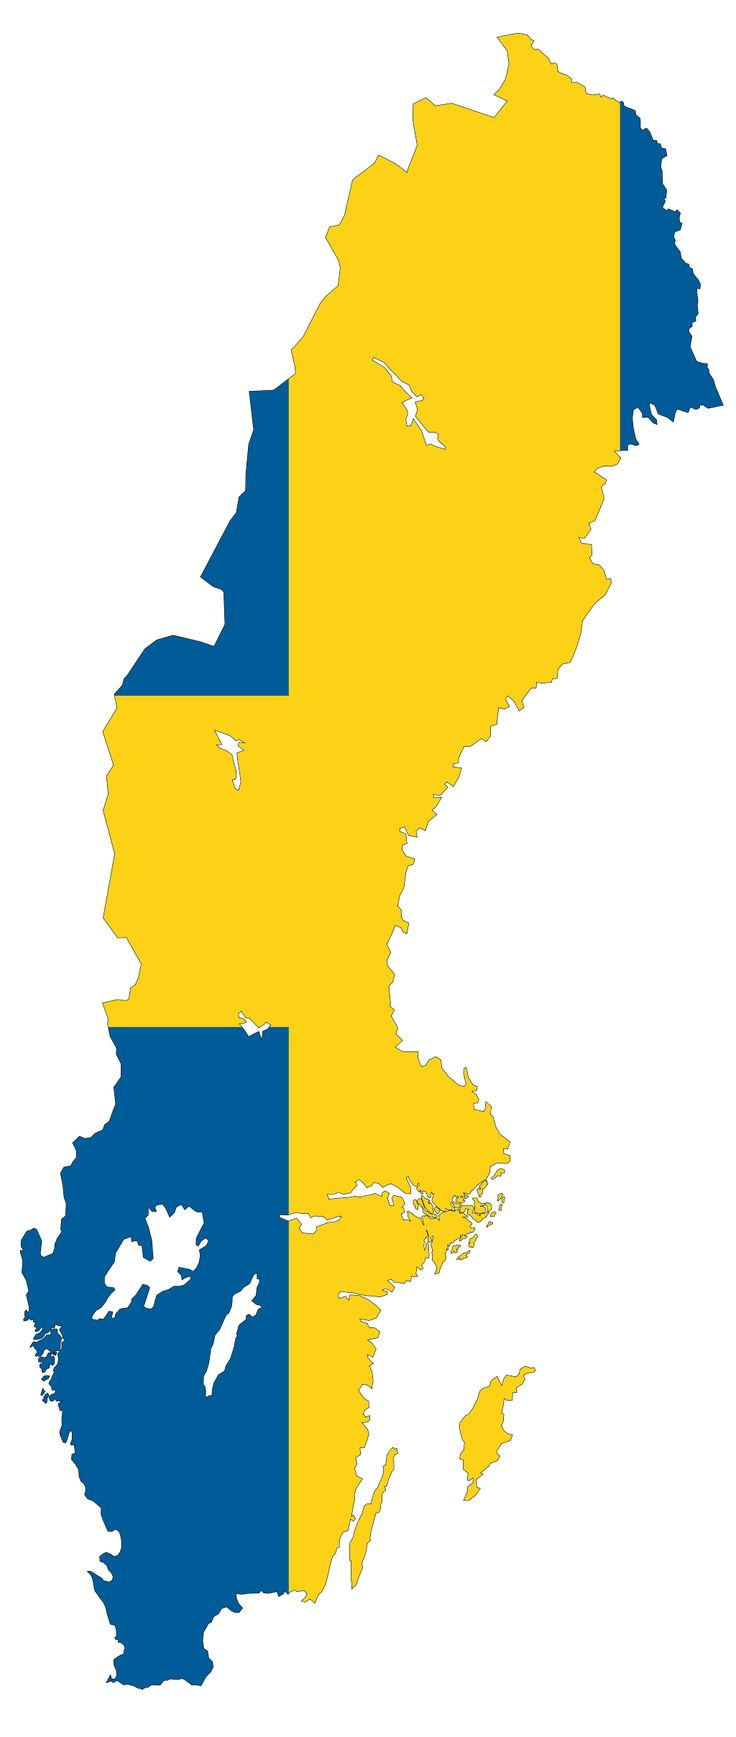 Best Sweden Flags Maps Images On Pinterest Travel Europe - Sweden maine map